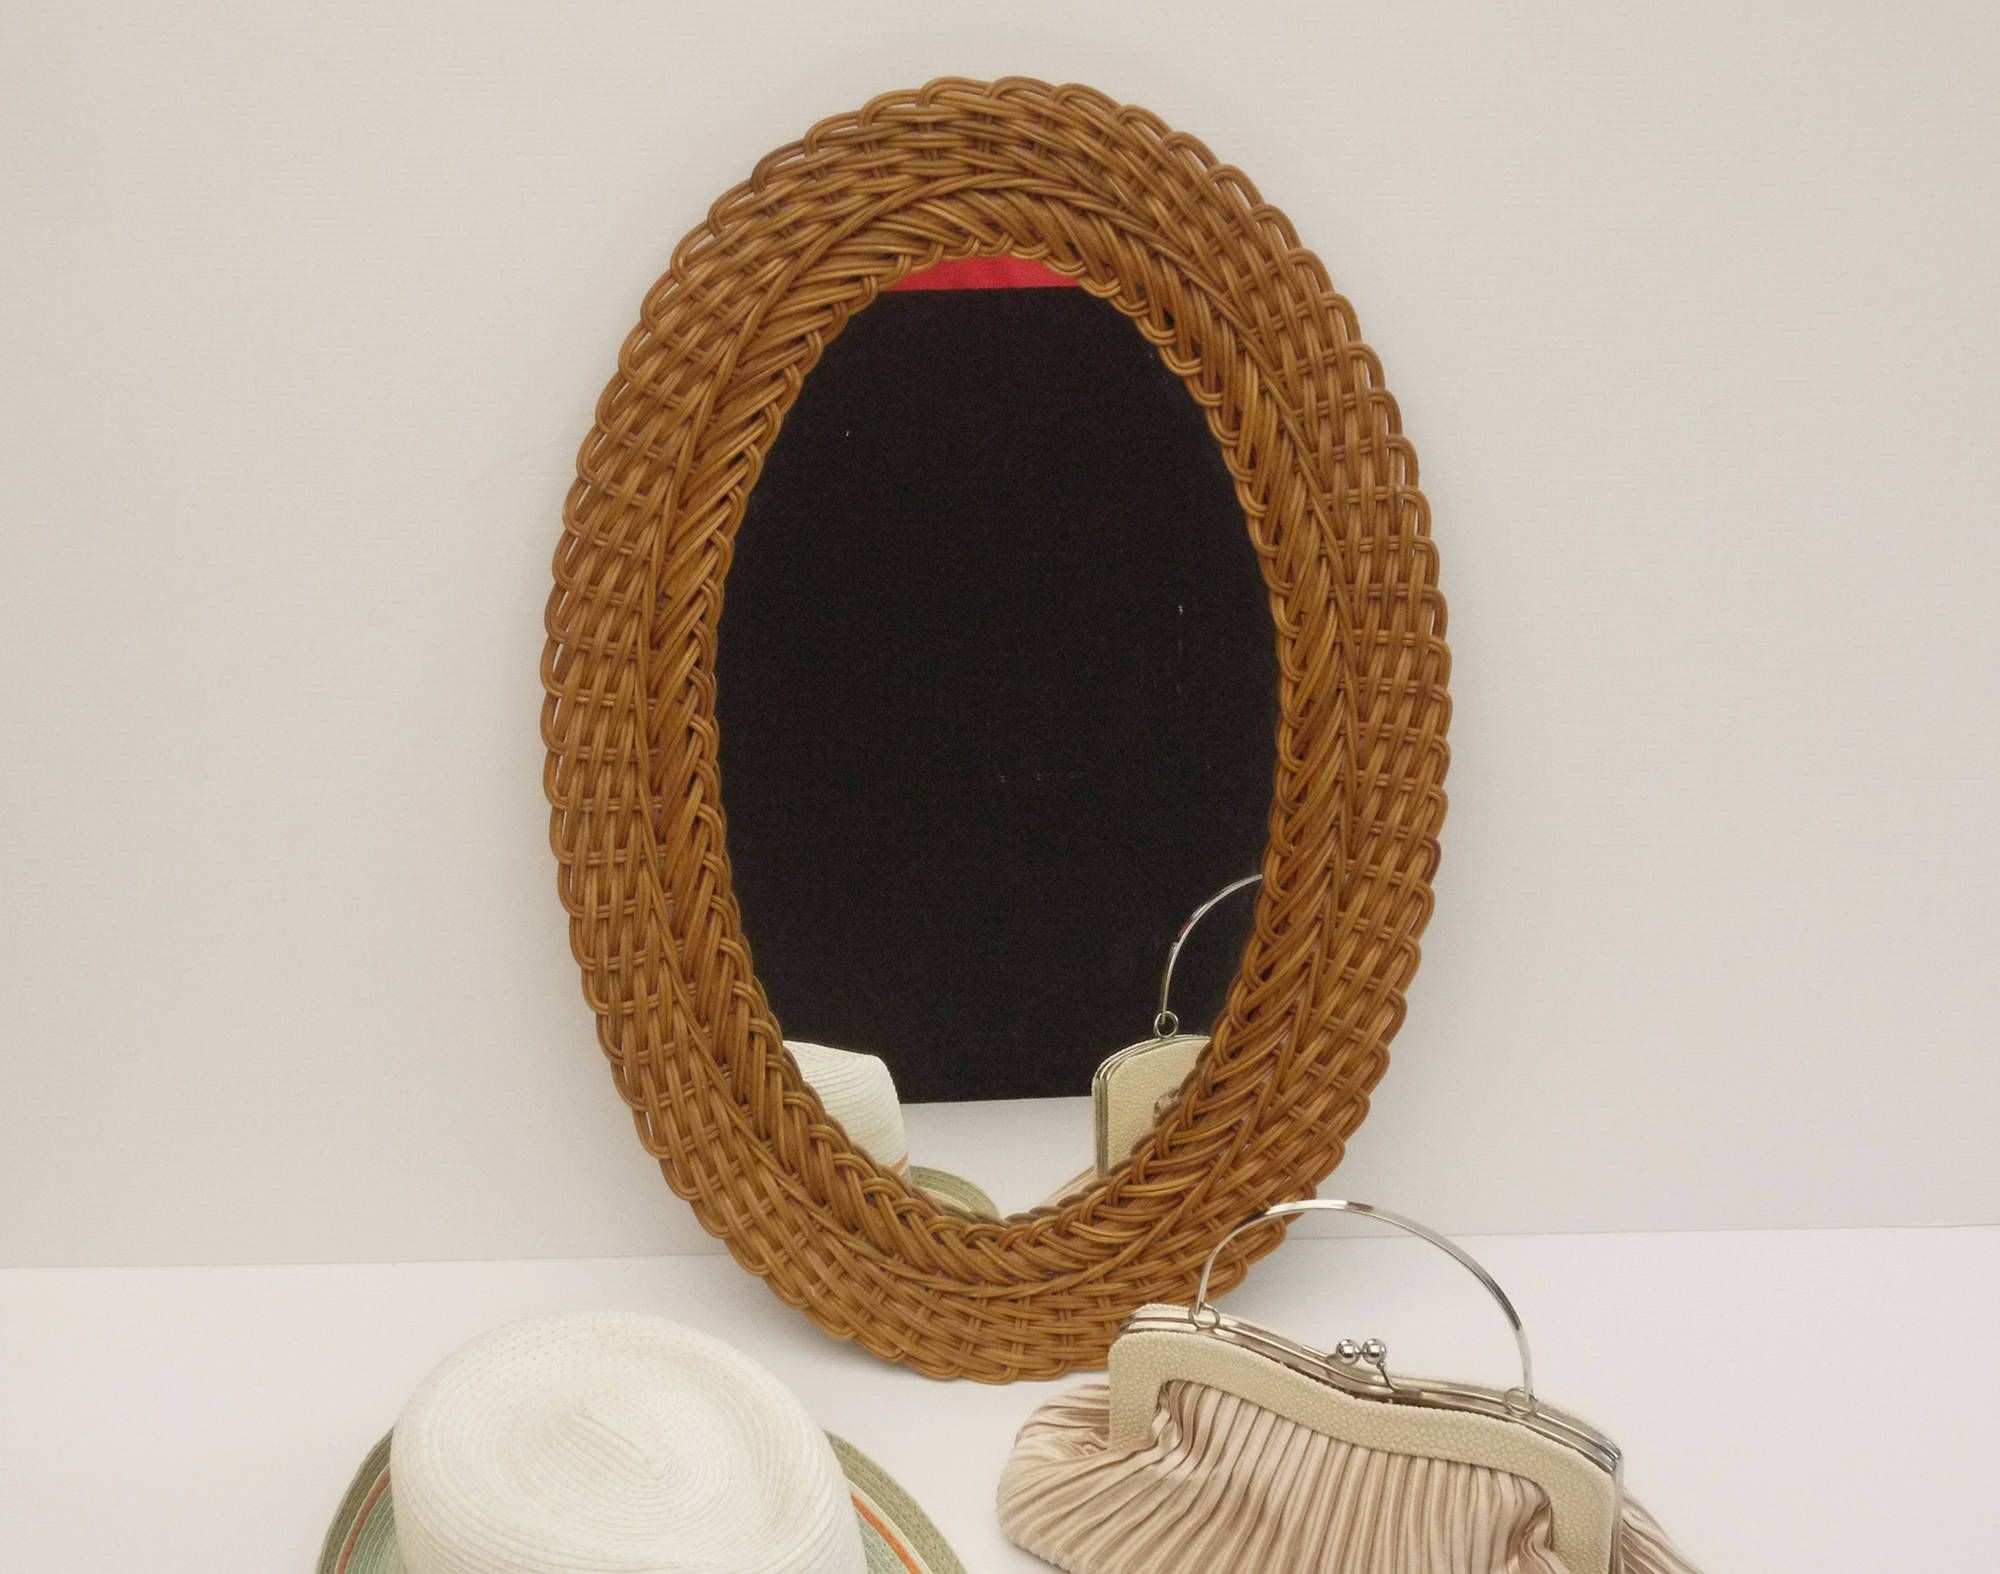 Vintage French Oval Shaped Rattan Mirror Wicker Sunburst Mirror